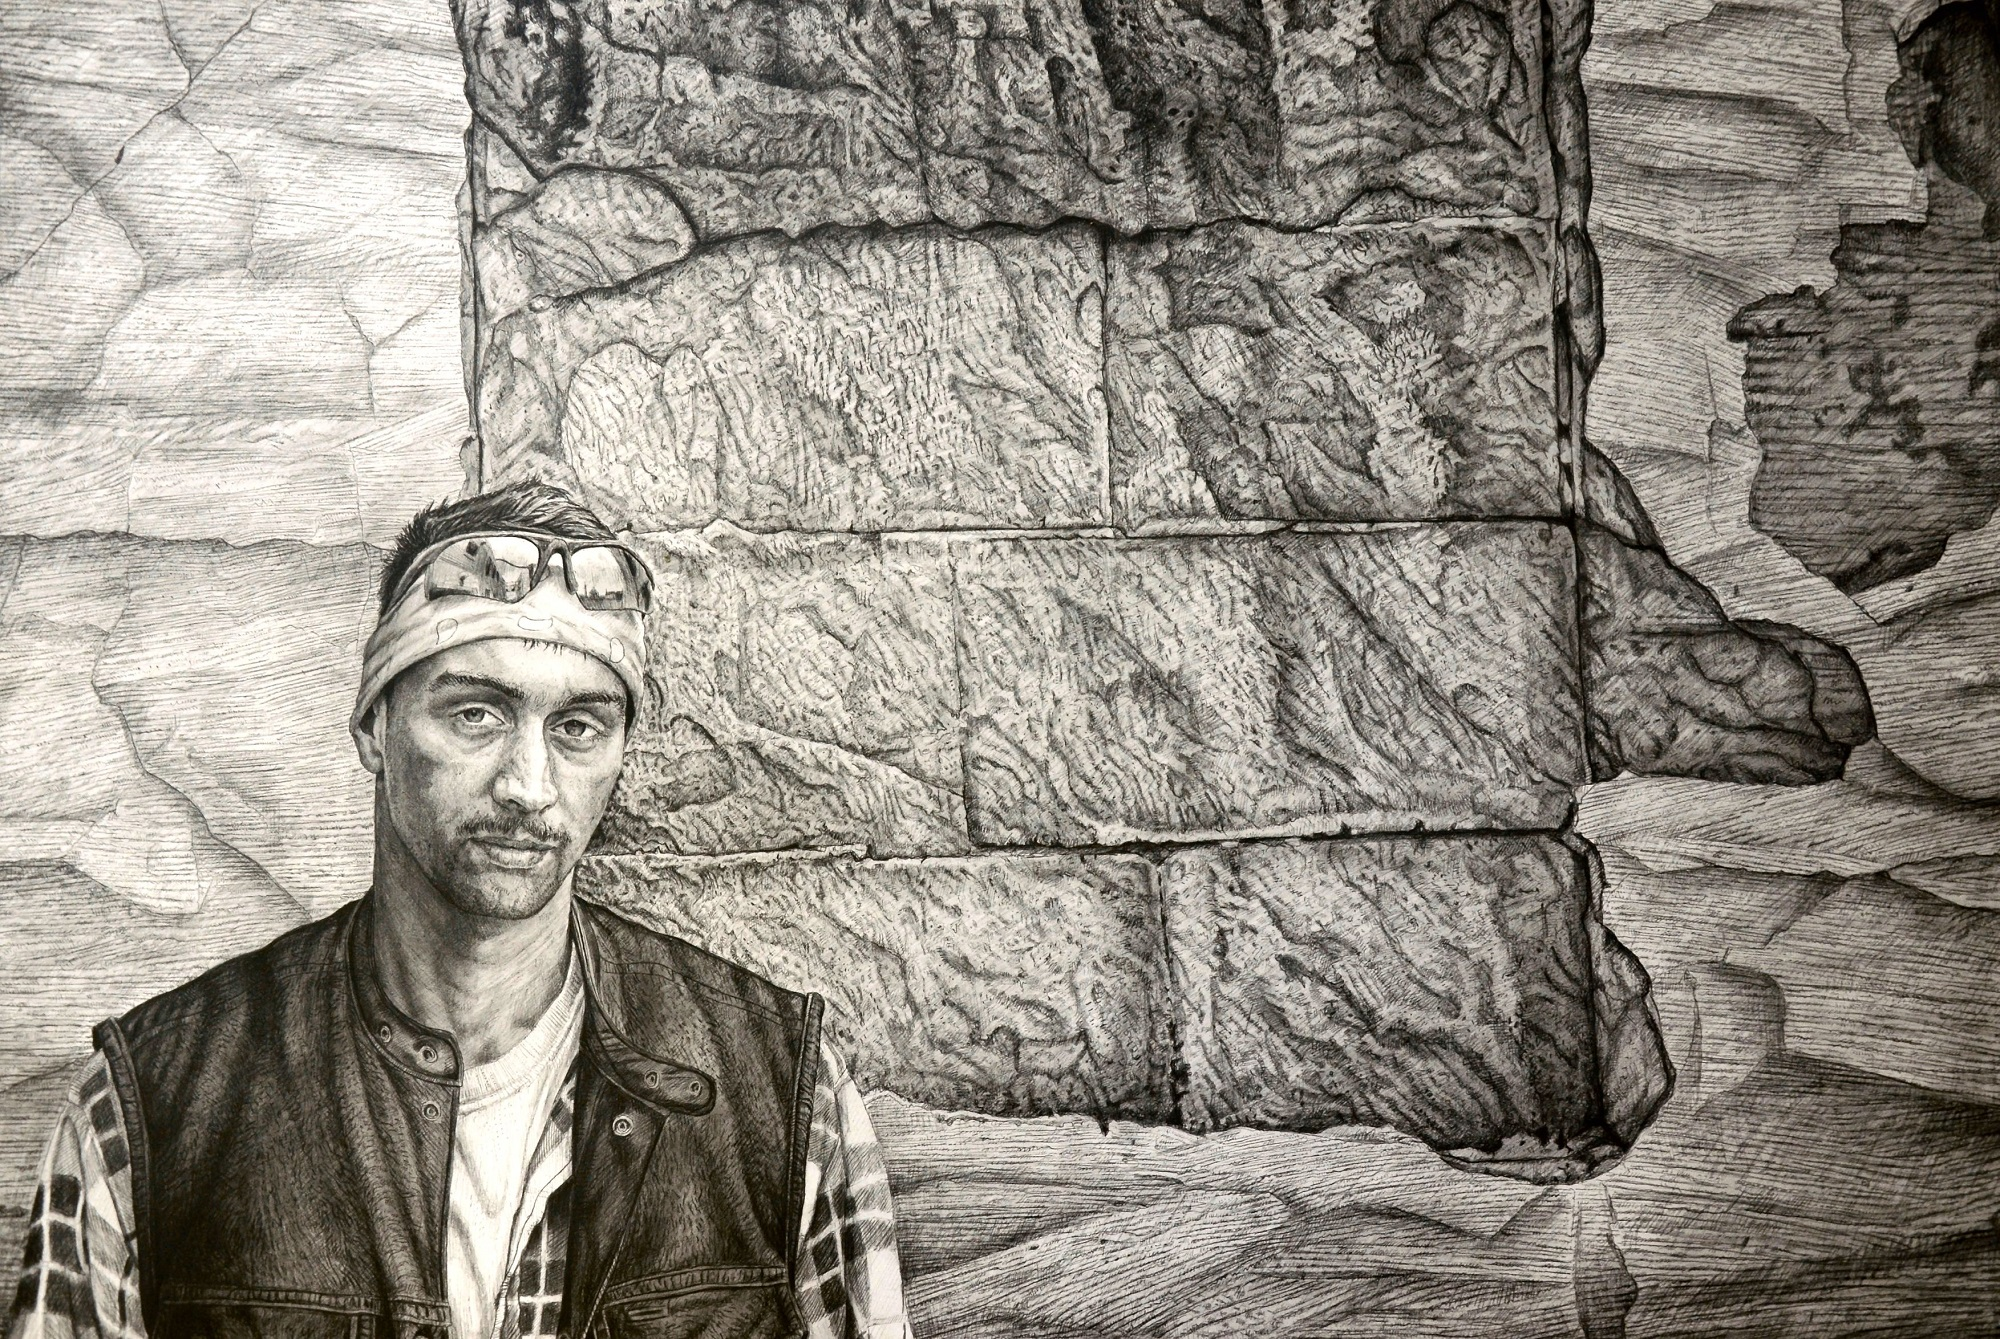 """Memento"" (24x36, graphite) by Robert Jinkins"